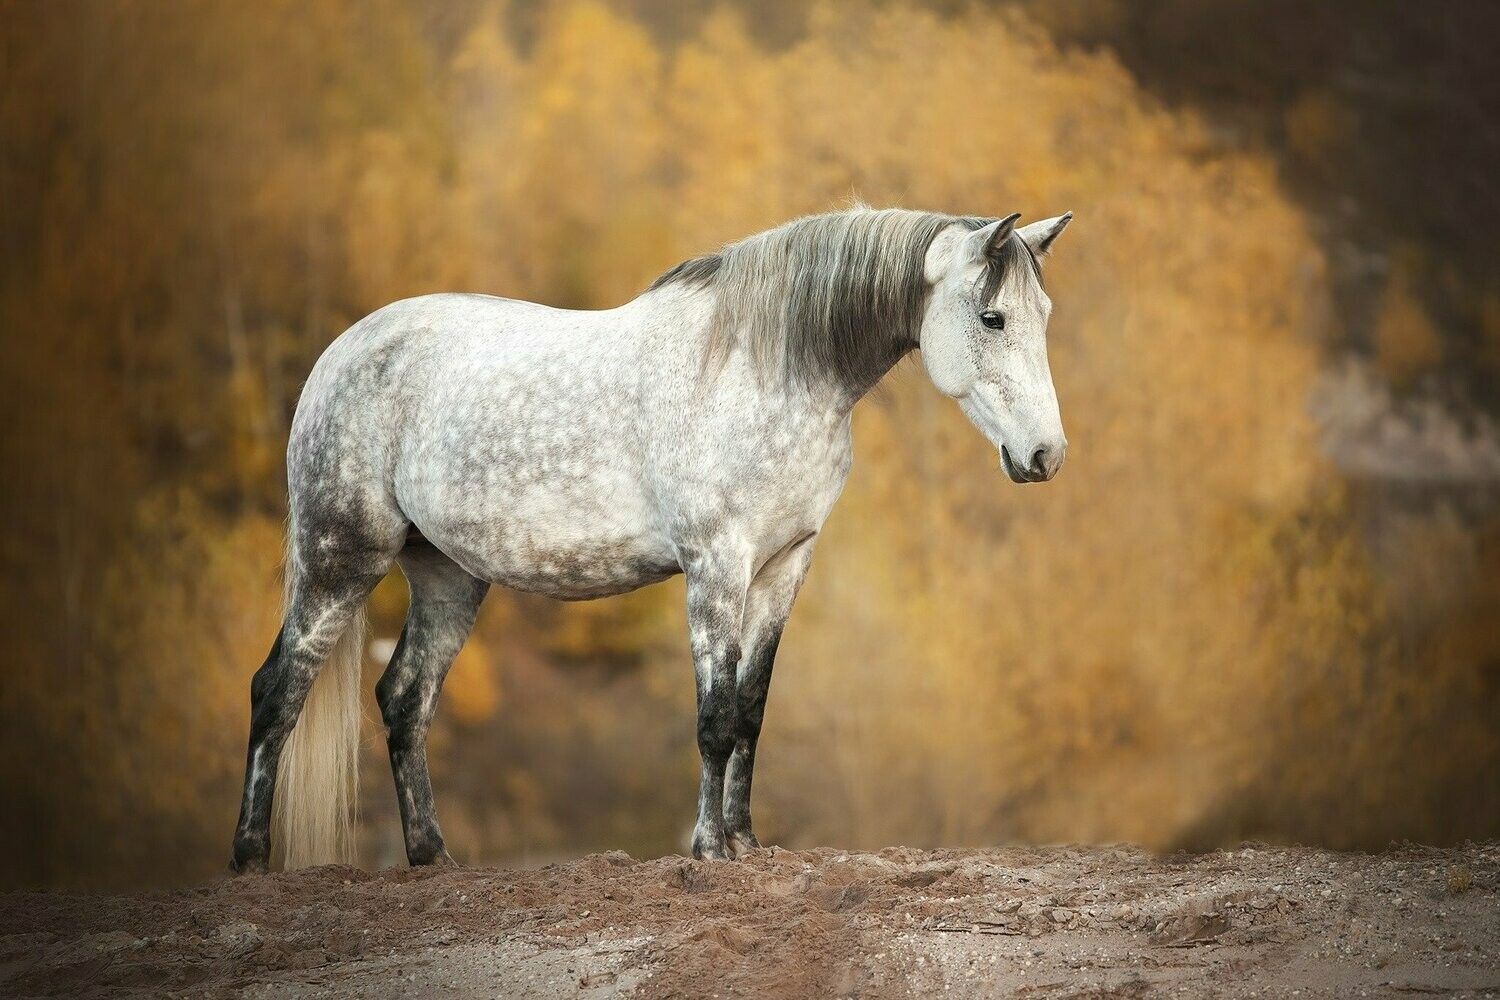 Horse 1 - Full Drill Diamond Painting - Specially ordered for you. Delivery is approximately 4 - 6 weeks.